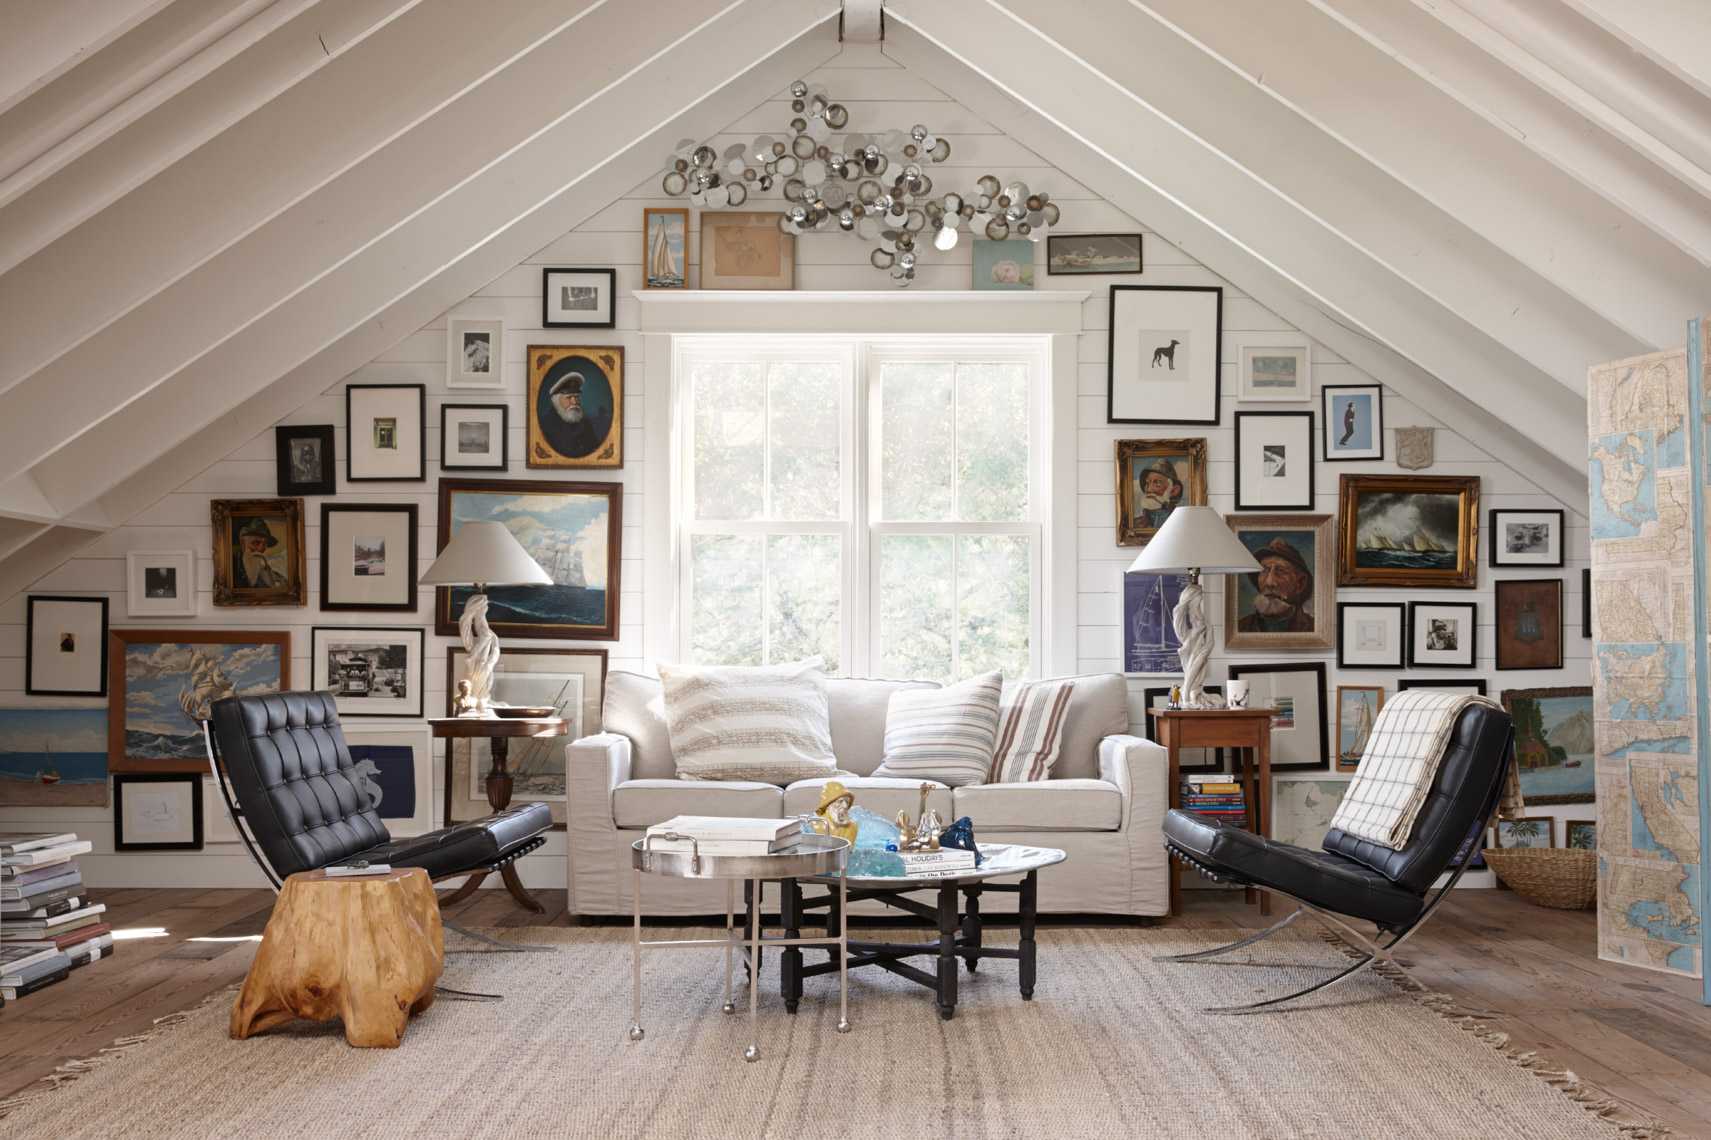 home attic a-frame living space with window and framed pictures on wall and white sofa between 2 black chairs San Francisco interior photographer